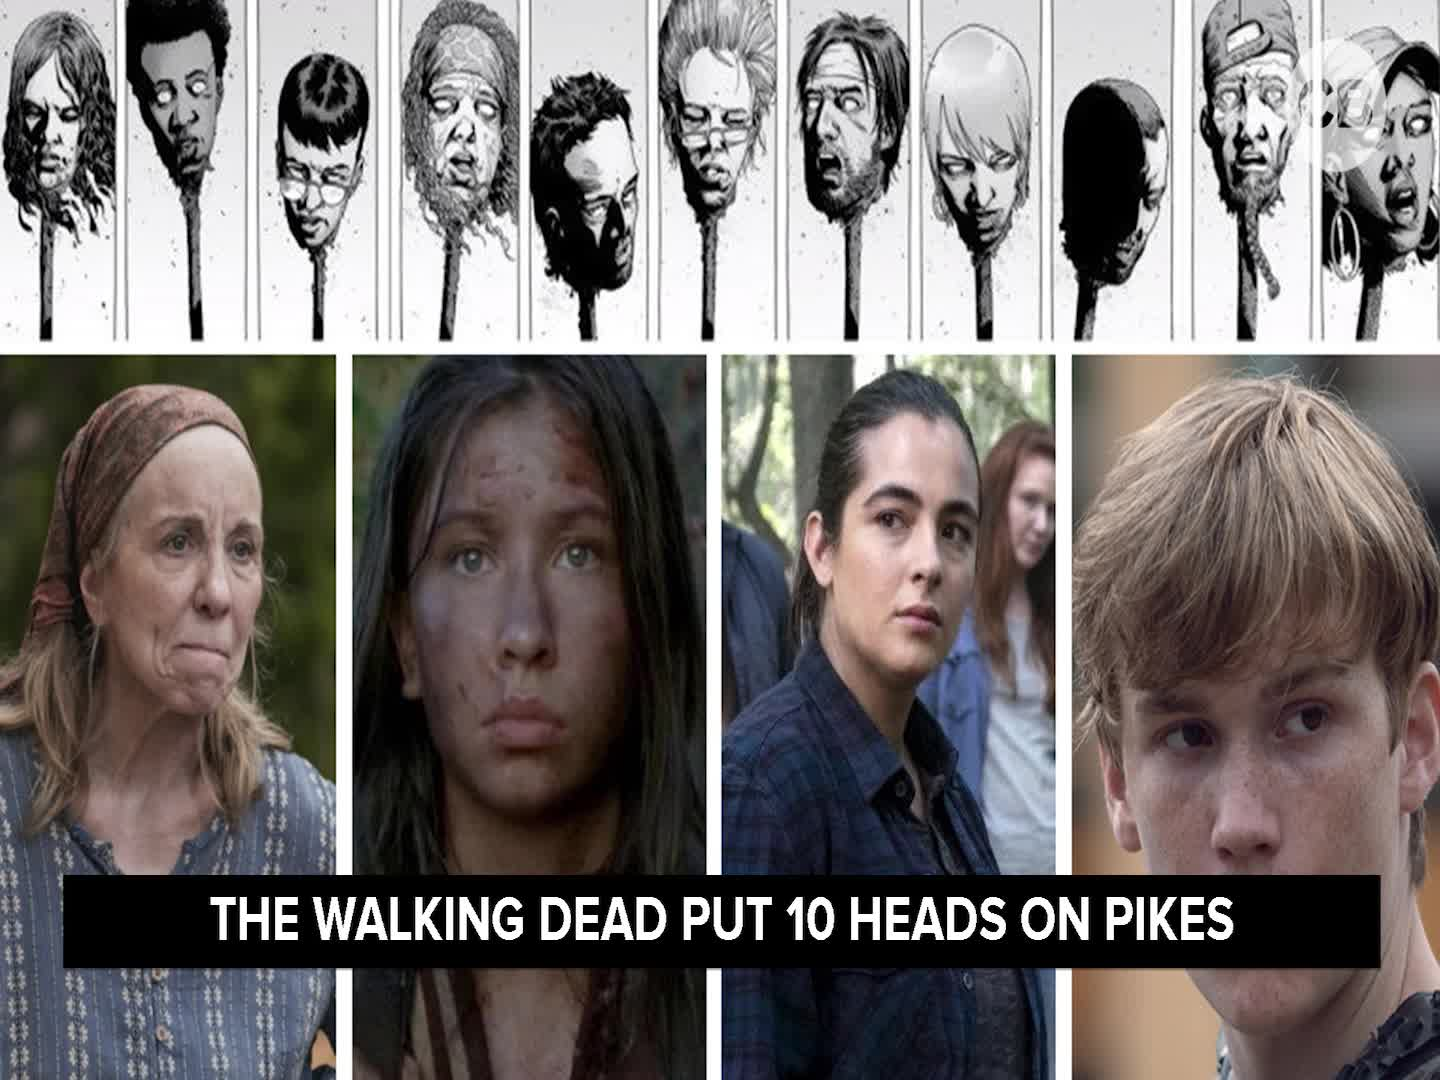 After the Dead: 'The Walking Dead' Reveals Its Pike Victims screen capture